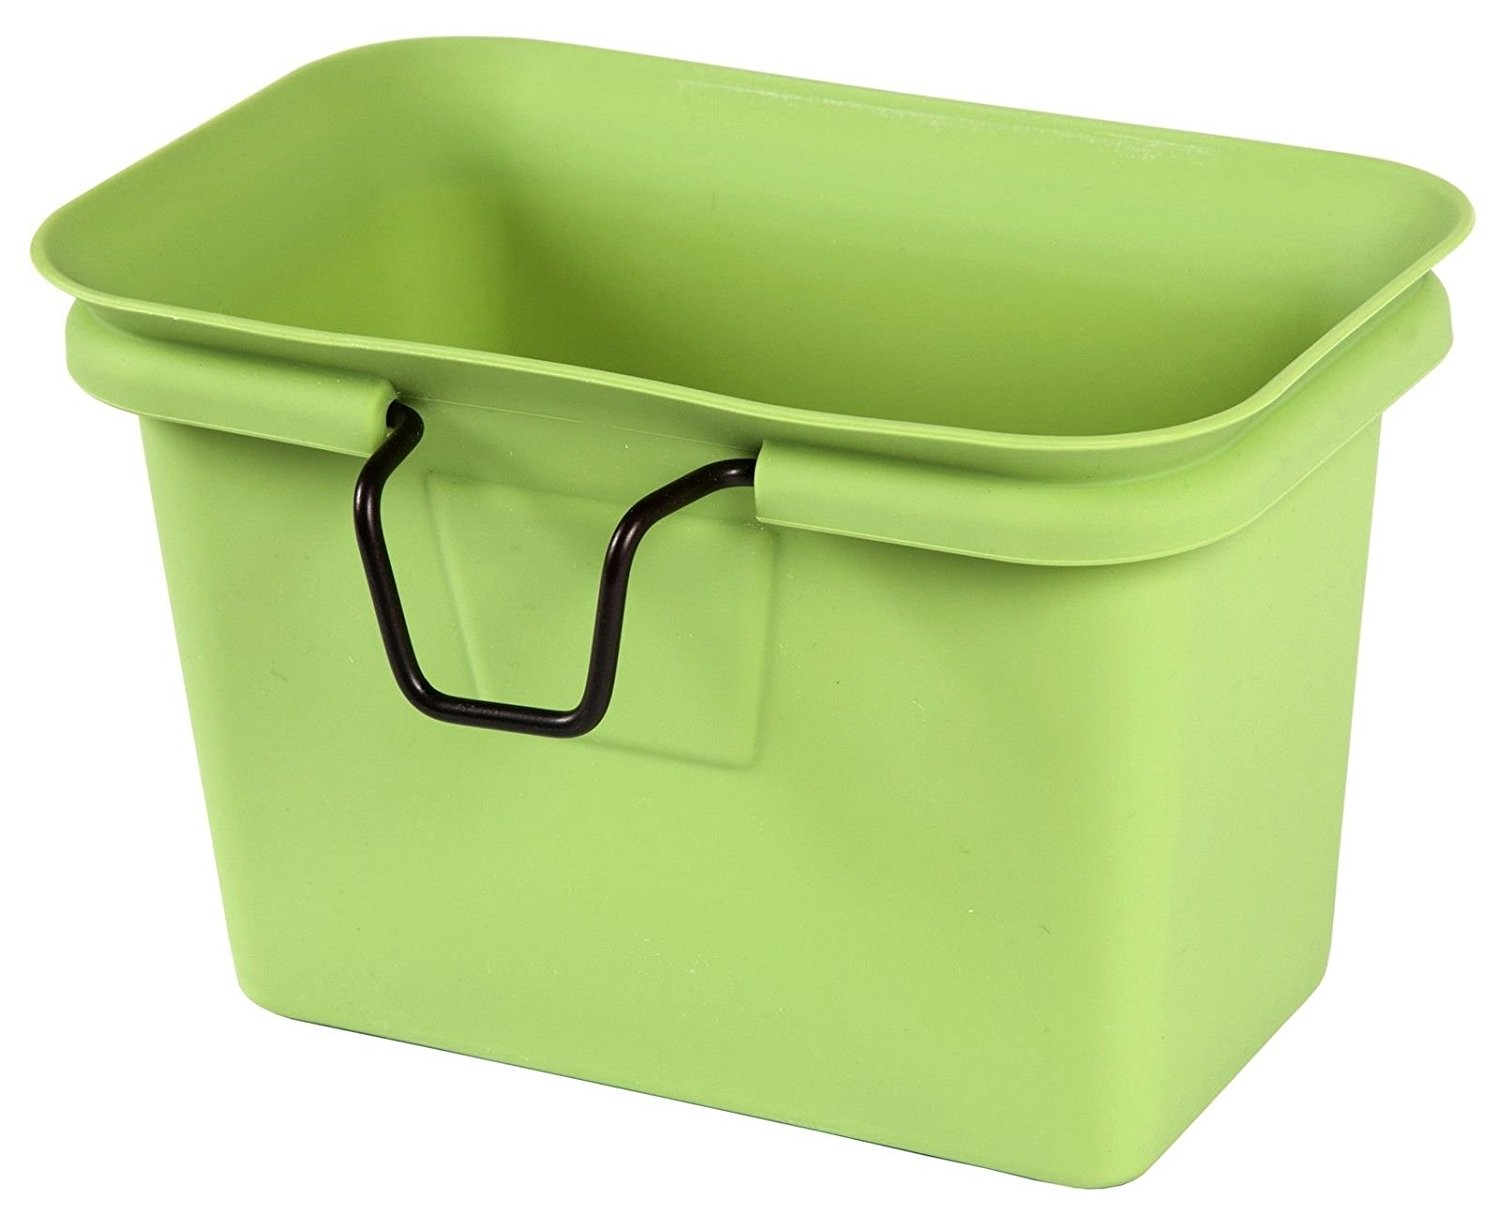 (Ship from USA) Full Circle FC11302-G Green Collector & Freezer Compost Bin /ITEM NO#8Y-IFW81854234163